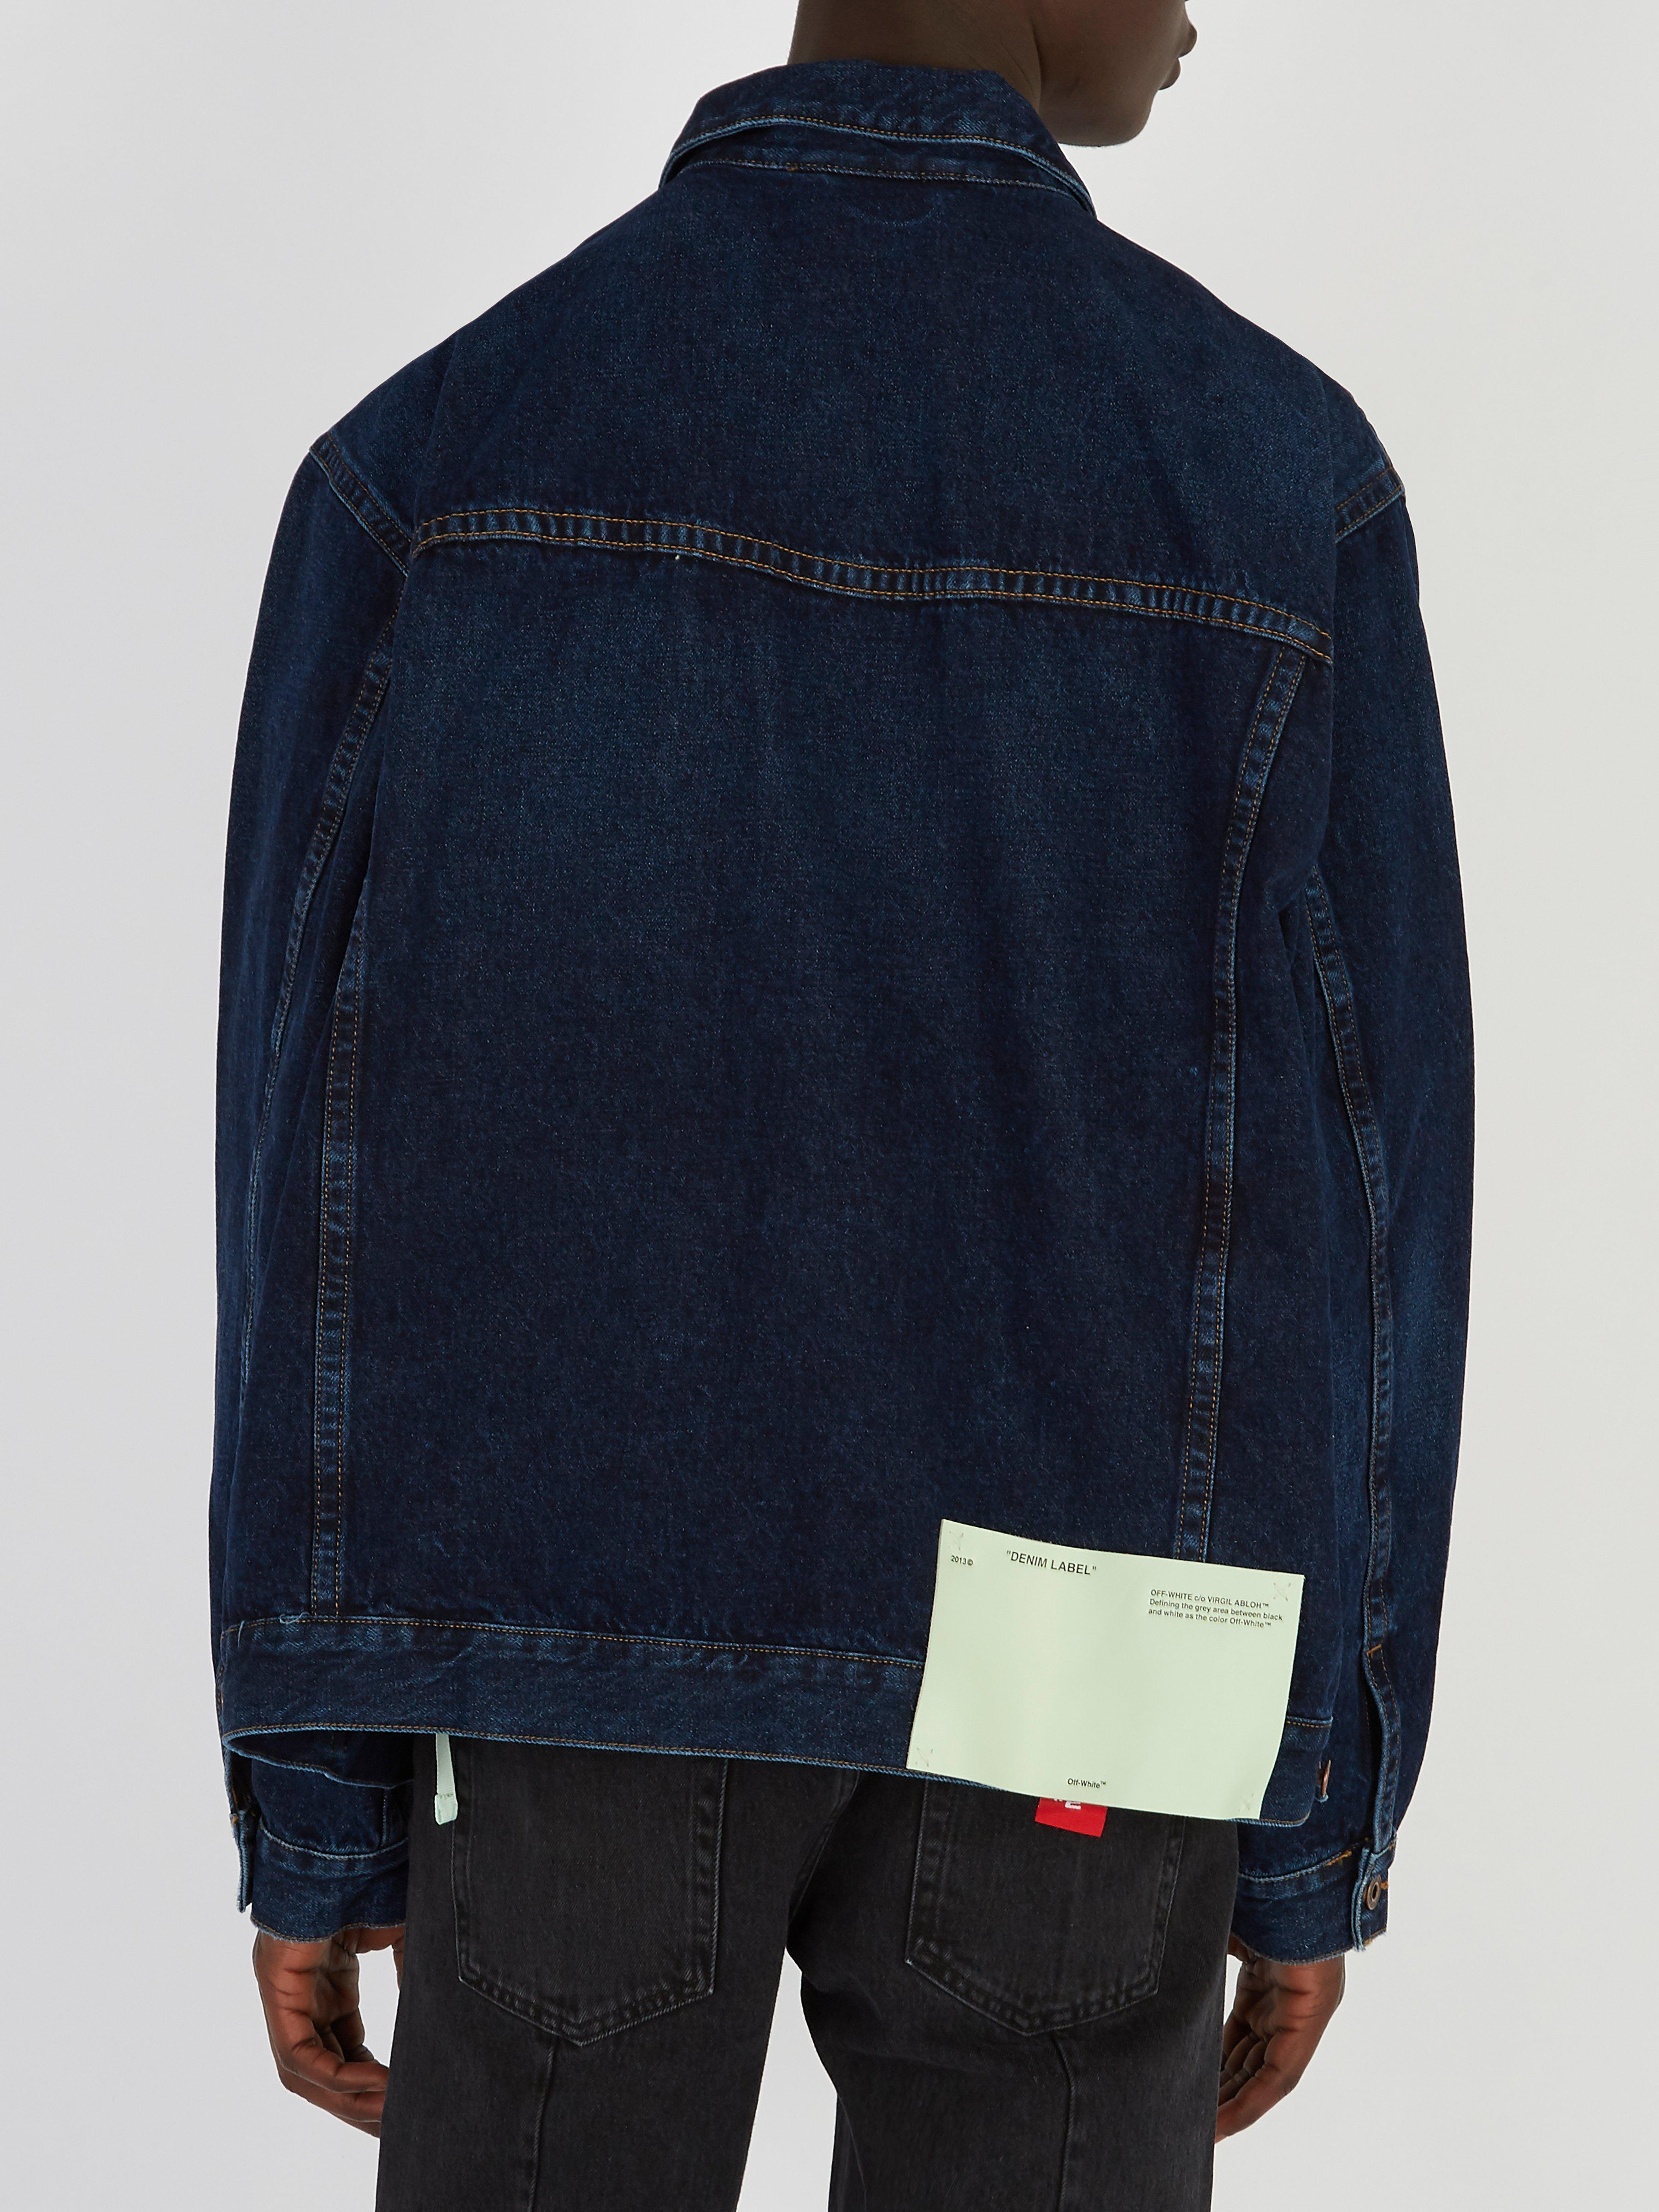 Off-White c/o Virgil Abloh Oversized Denim Jacket in Indigo (Blue) for Men